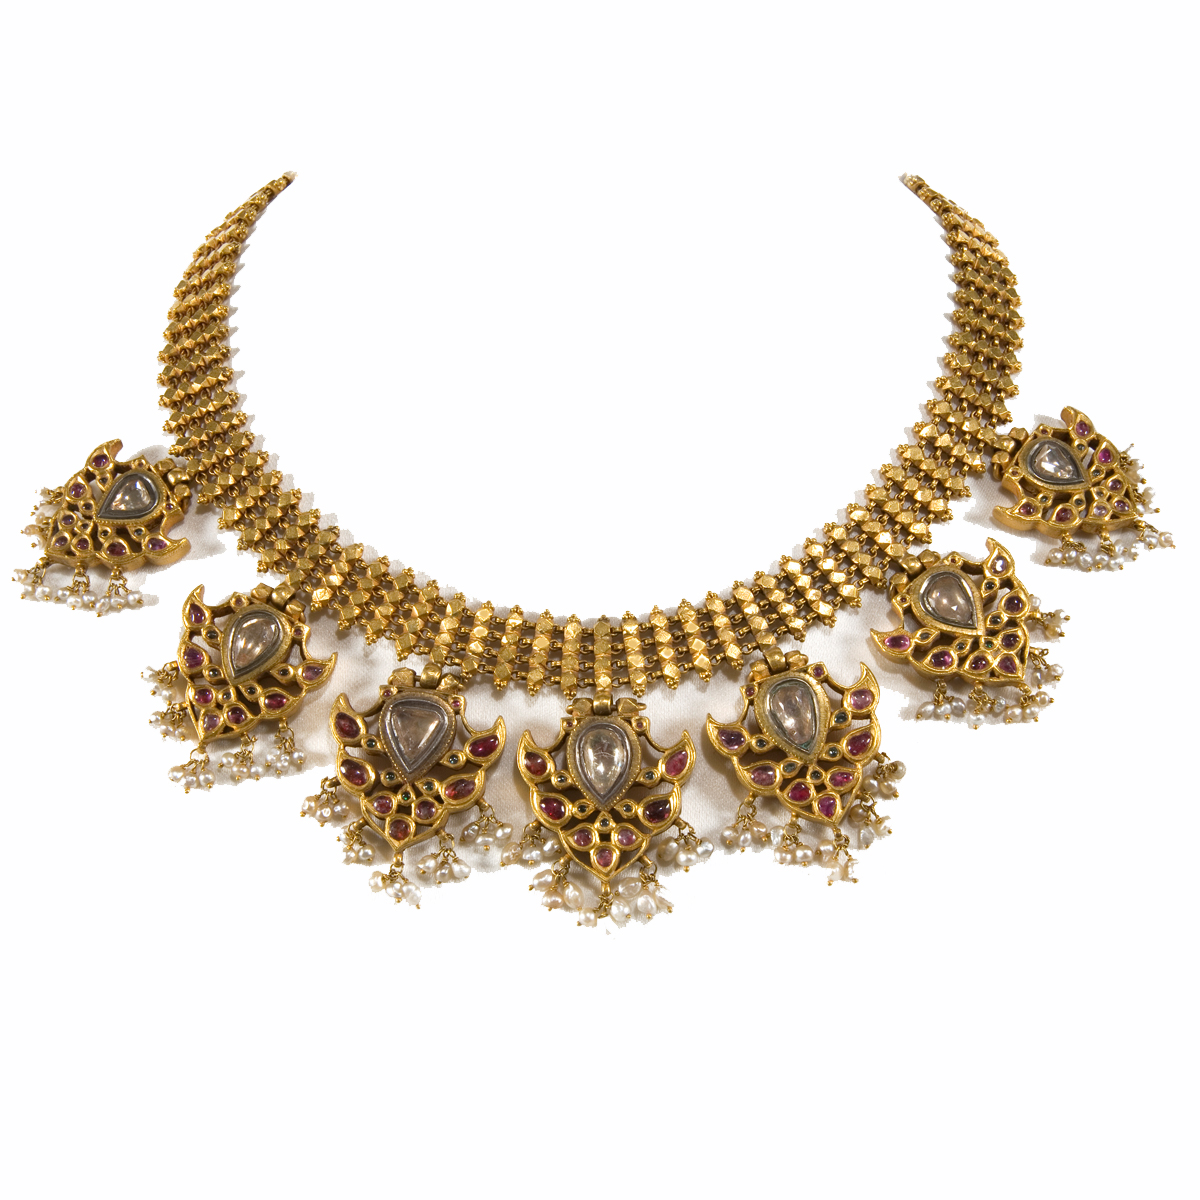 VGIJ-1383-gold-necklace